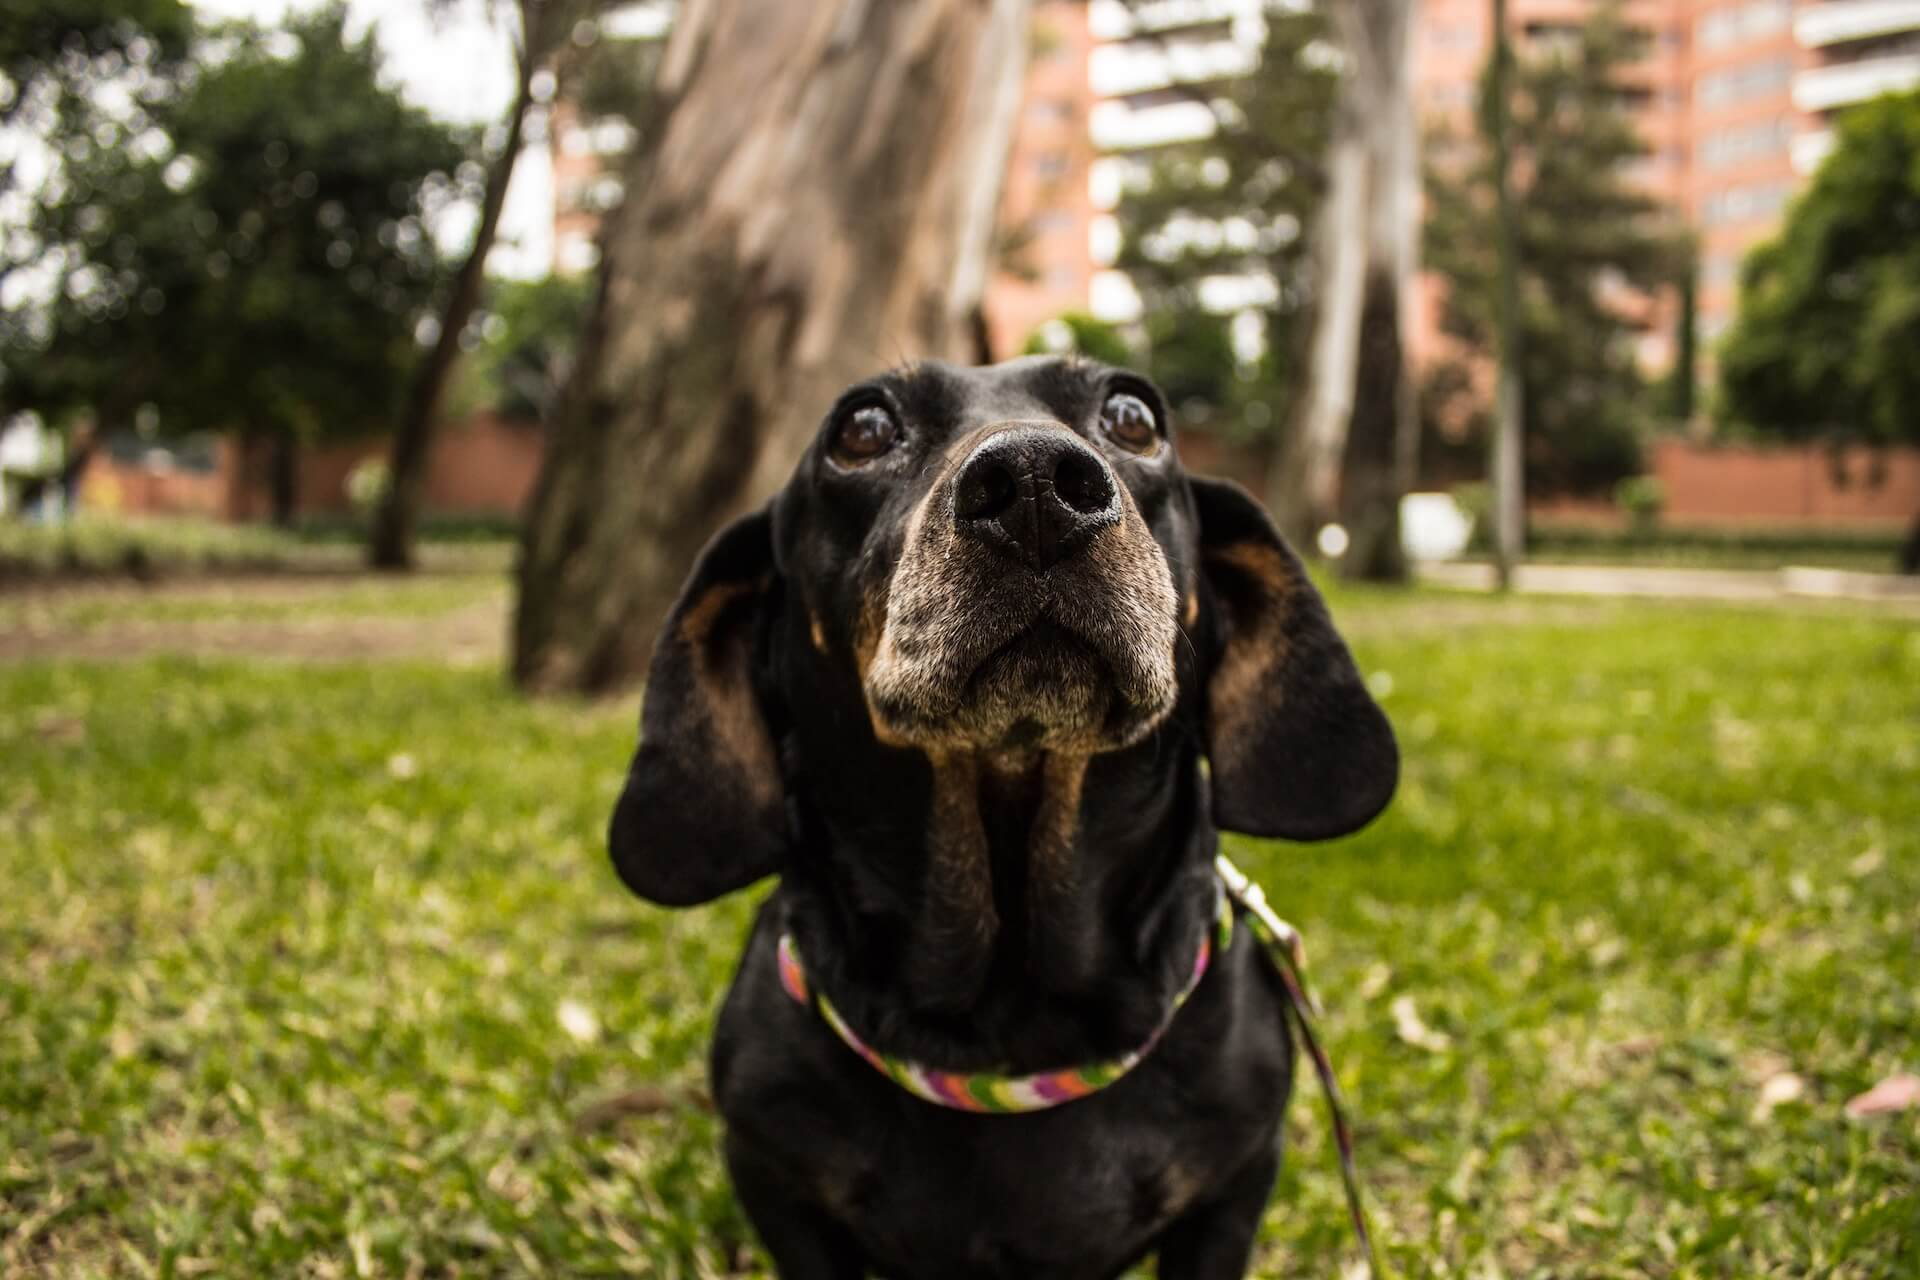 Black dachshund with a gray face looking longingly at the camera